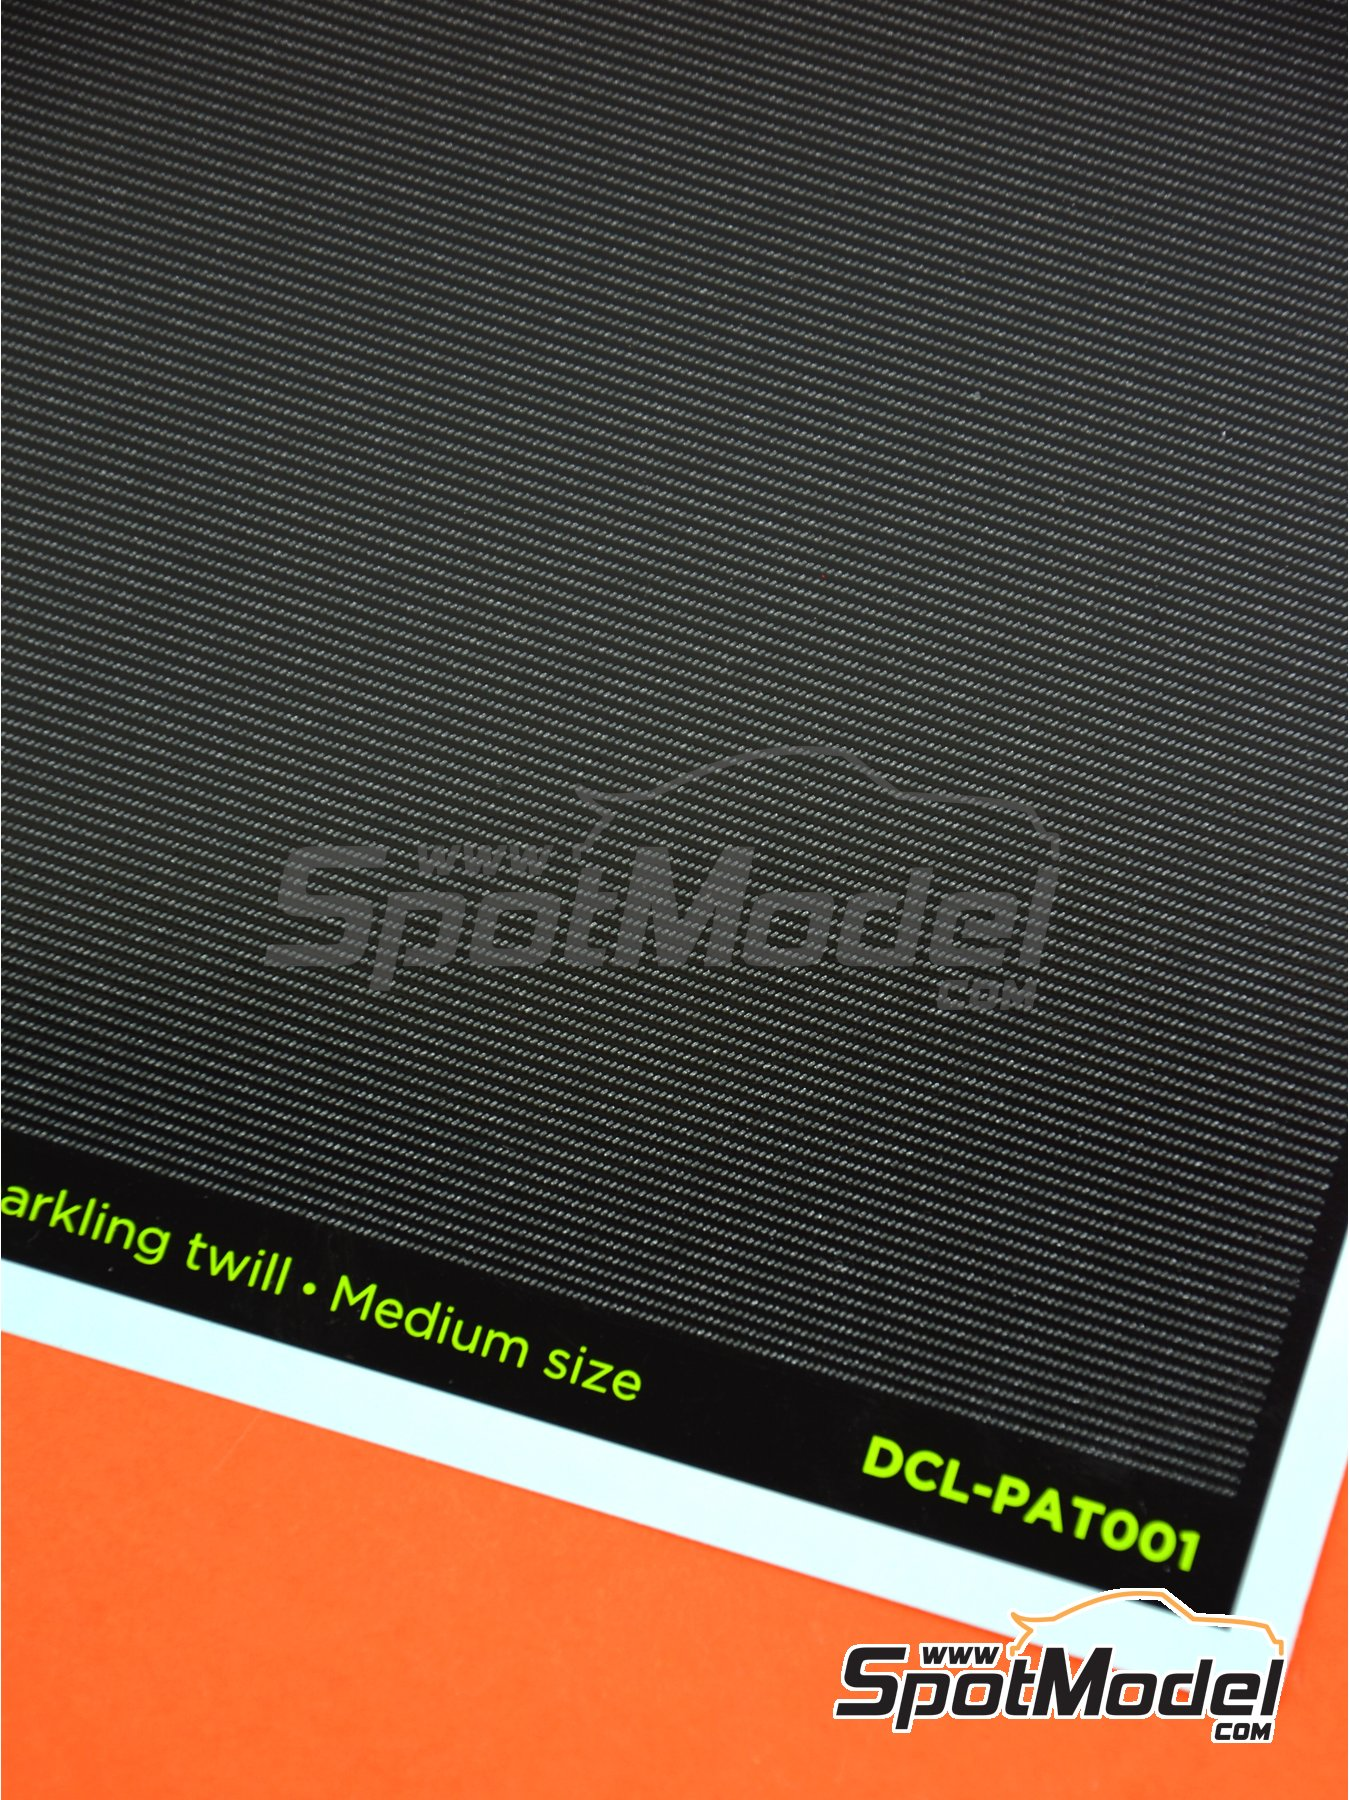 Carbon fiber sparkling twill medium size | Decals in 1/12 scale manufactured by Decalcas (ref. DCL-PAT001) image